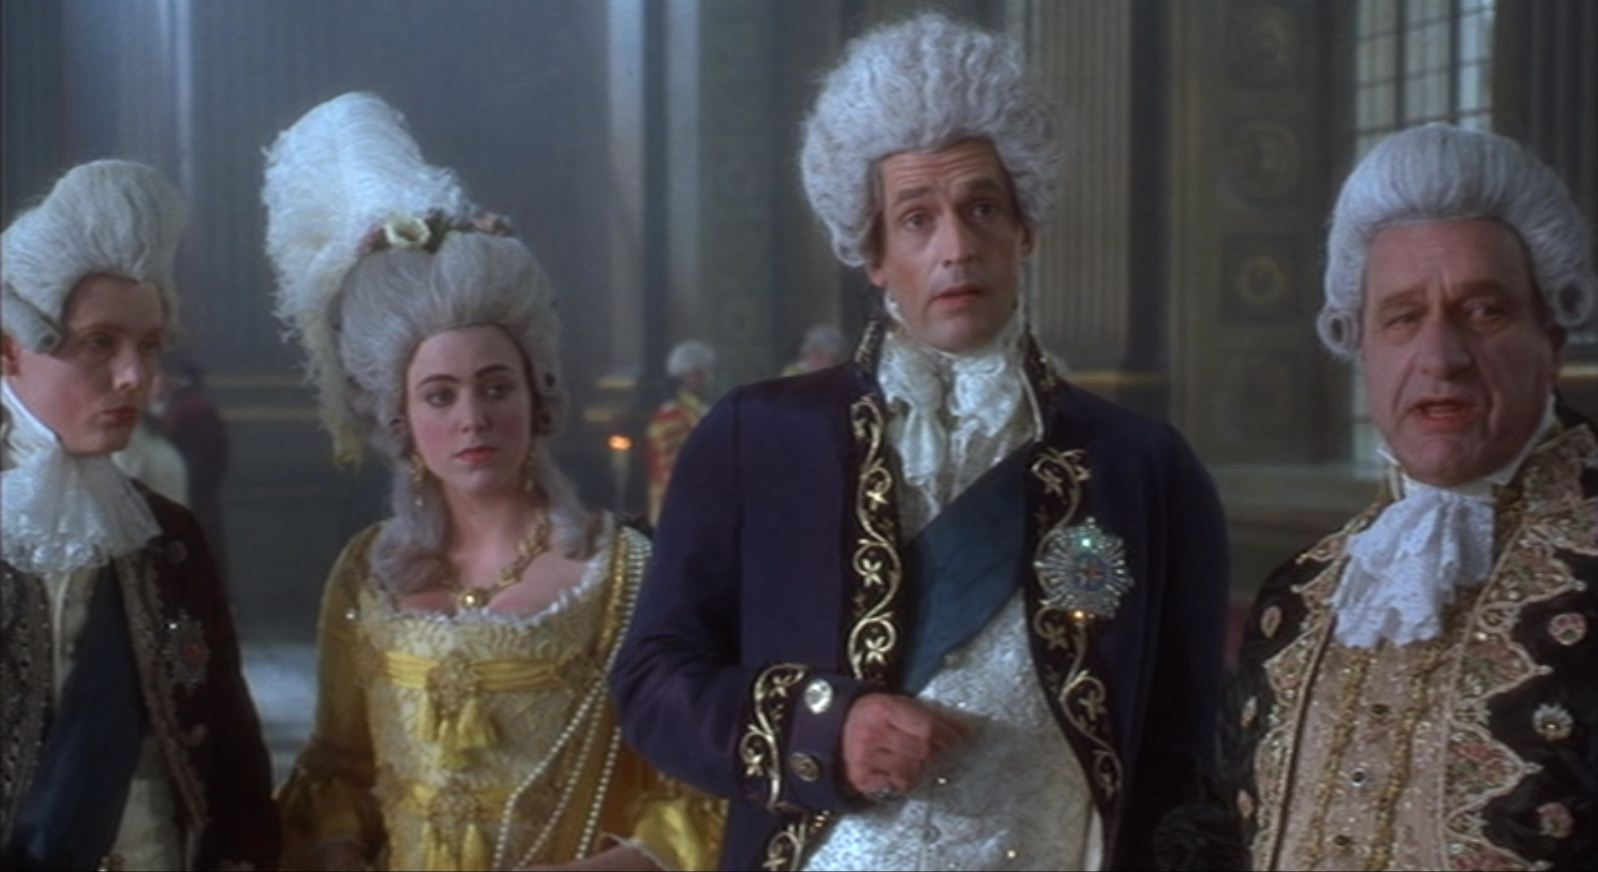 d2b2db38df5e83 Ever wondered why huge, ridiculous powdered wigs became a fashion ...